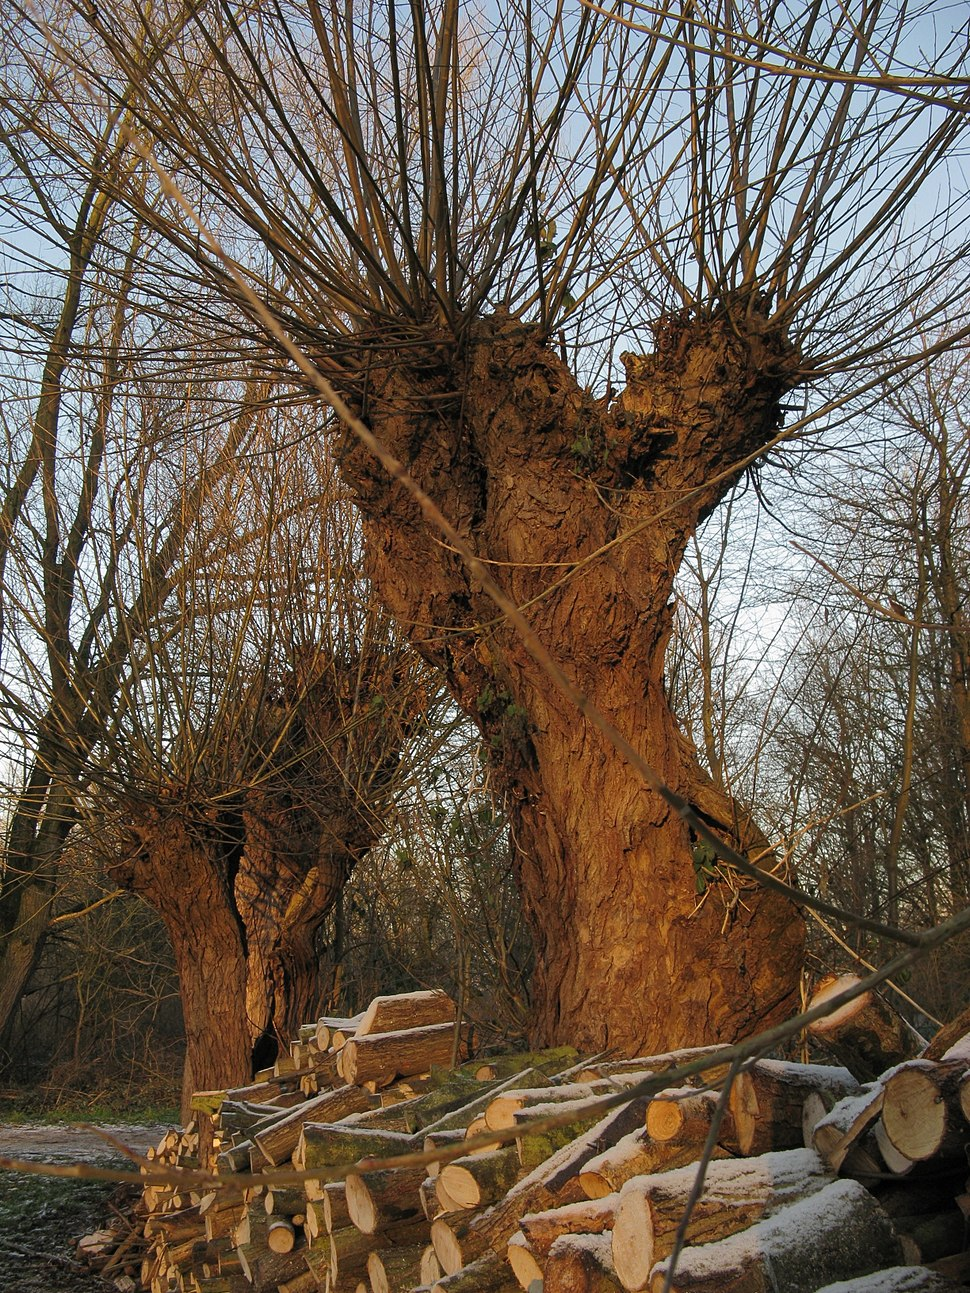 Bourgoyen knotted willow and woodpile